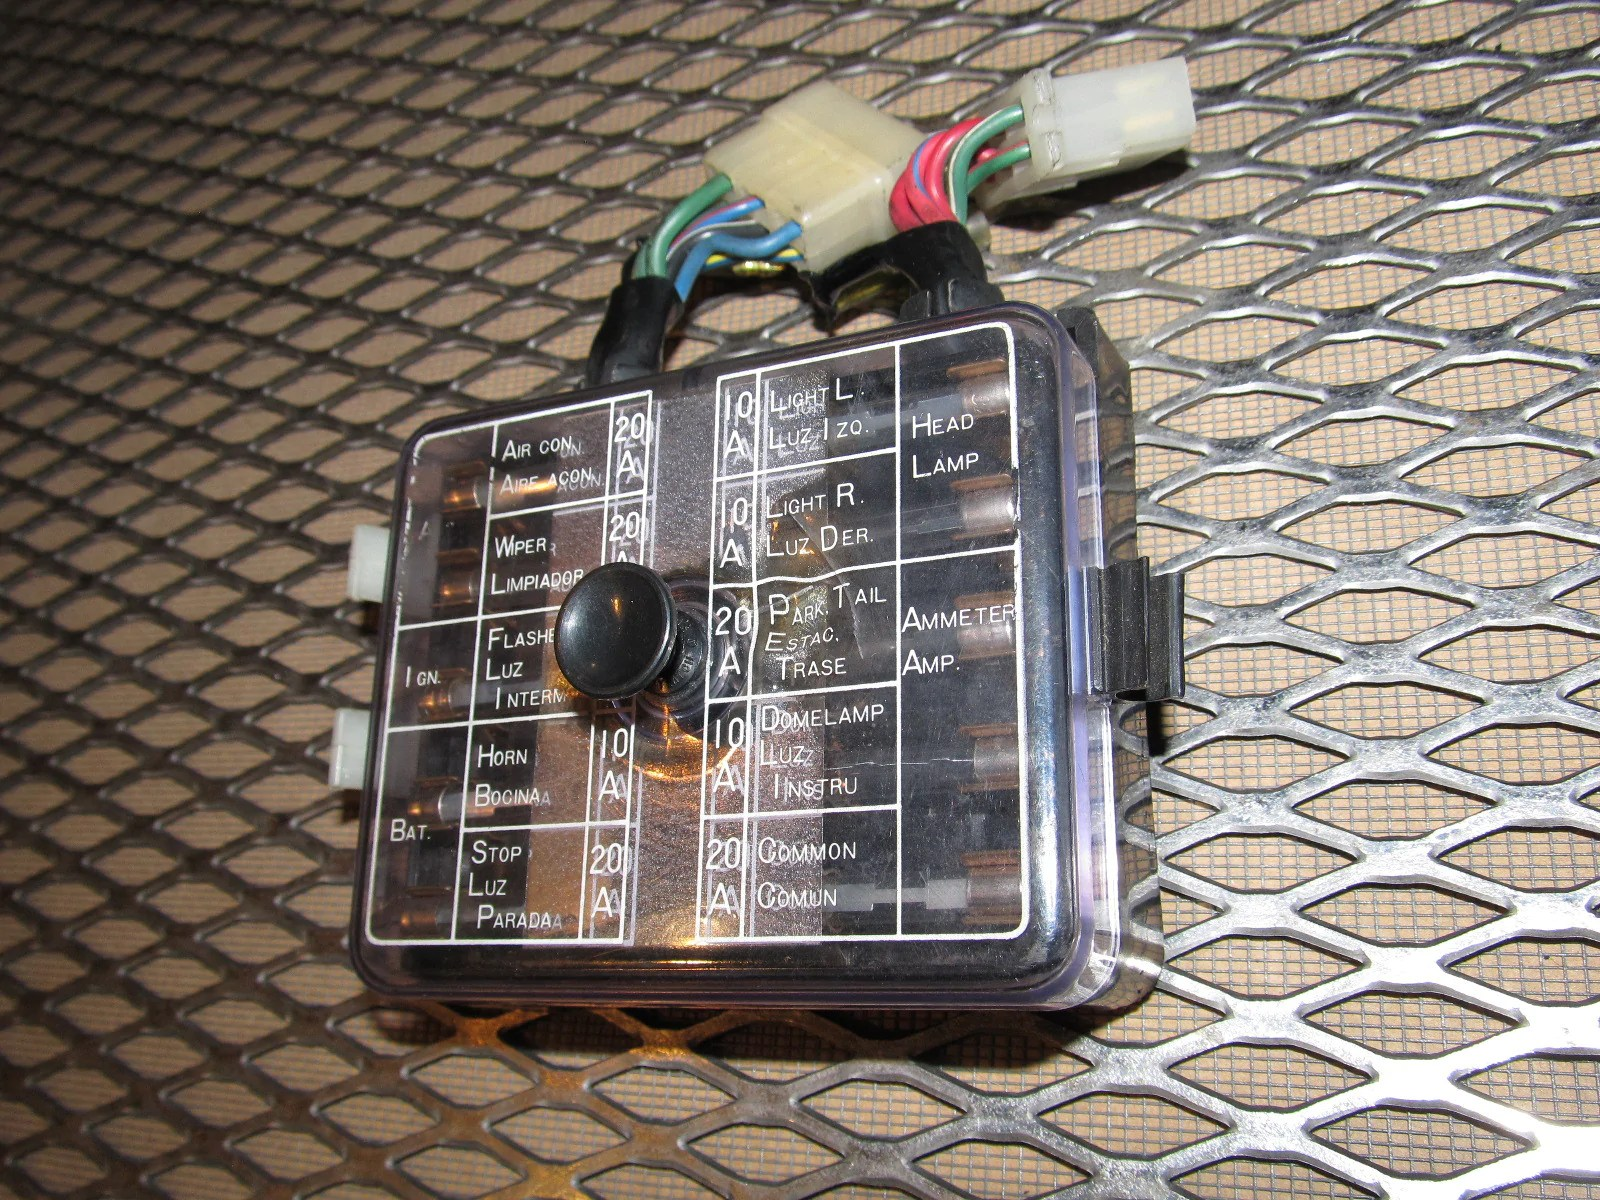 240z Fuse Box Layout Auto Electrical Wiring Diagram 1971 Datsun 1972 Cover 510